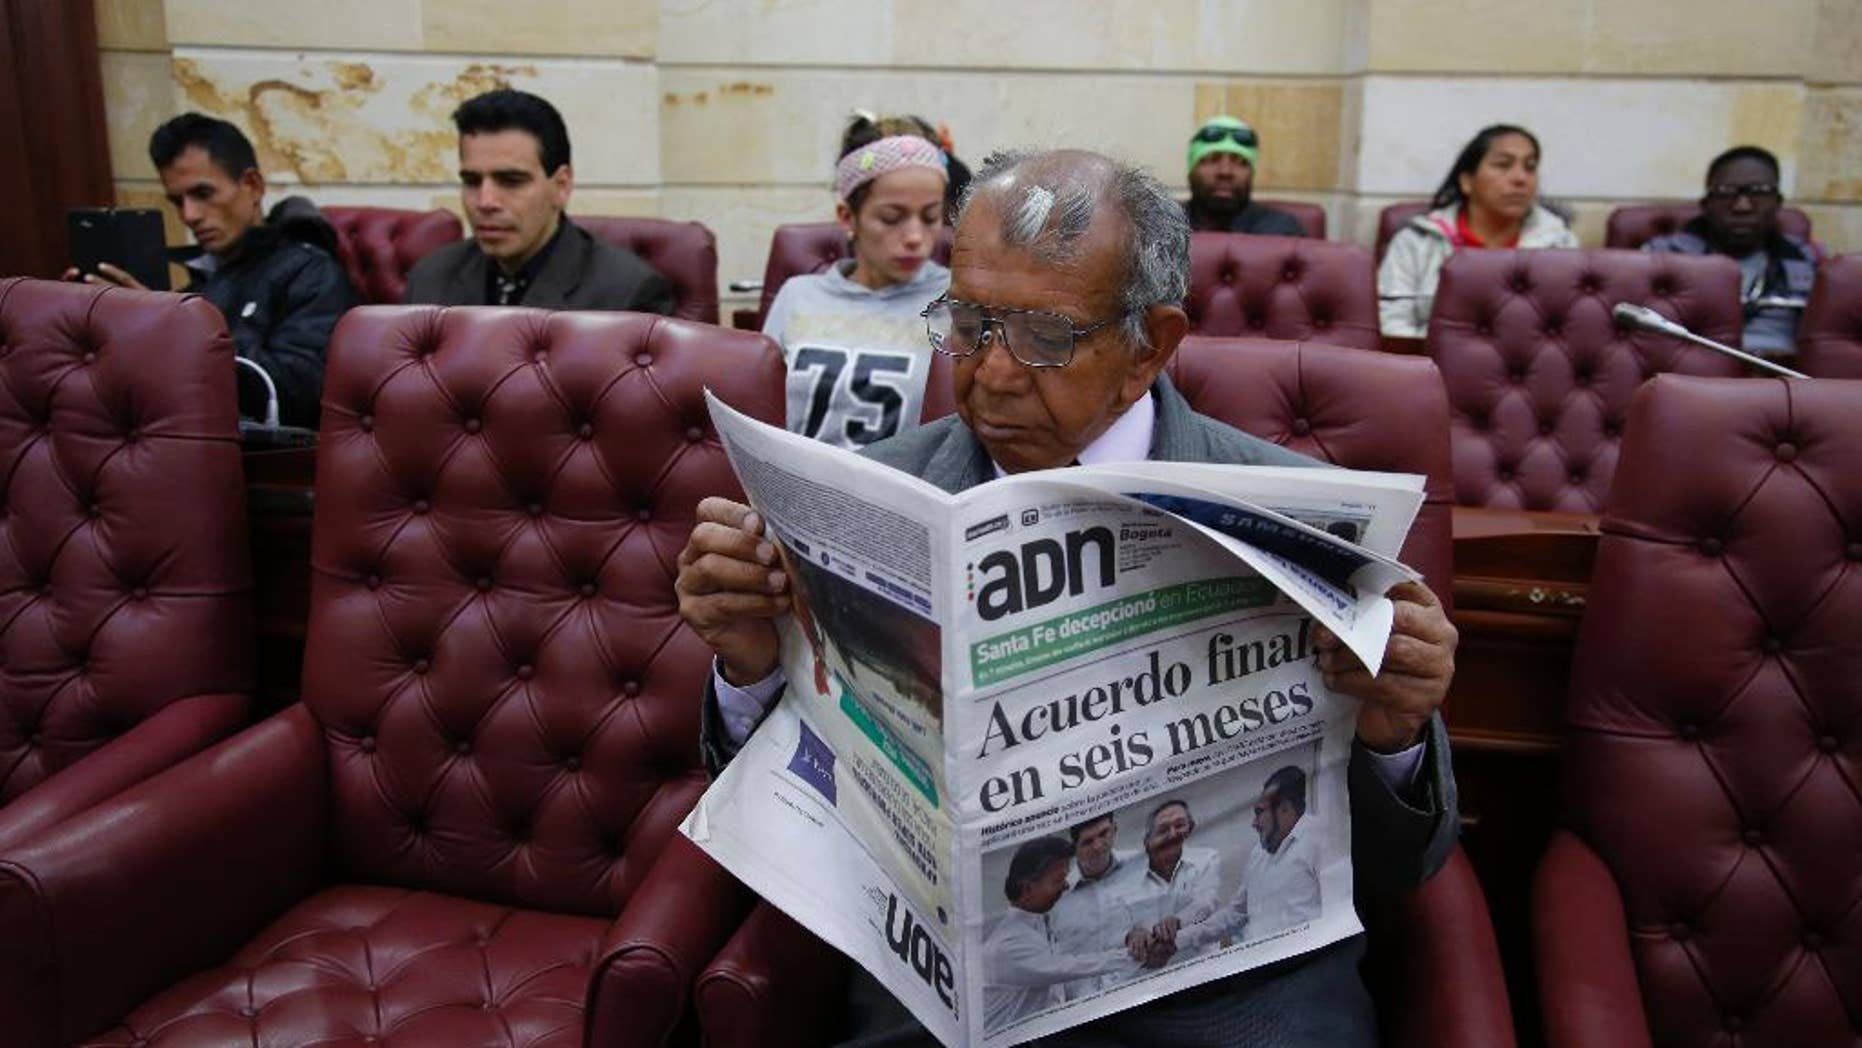 """Pedro Osuna Ramirez, 67, who says that he and his family were pushed from their land in central Colombia by rebels of the Revolutionary Armed Forces of Colombia, FARC, reads a newspaper during a hearing with victims of the guerrilla group inside Congress in Bogota, Colombia, Thursday, Sept. 24, 2015. Colombia's President Juan Manuel Santos and leaders of the FARC met in Havana on Wednesday, and vowed to end Latin America's longest-running armed conflict in the coming months. The newspaper's headline reads in Spanish """"Final agreement in six months."""" (AP Photo/Fernando Vergara)"""